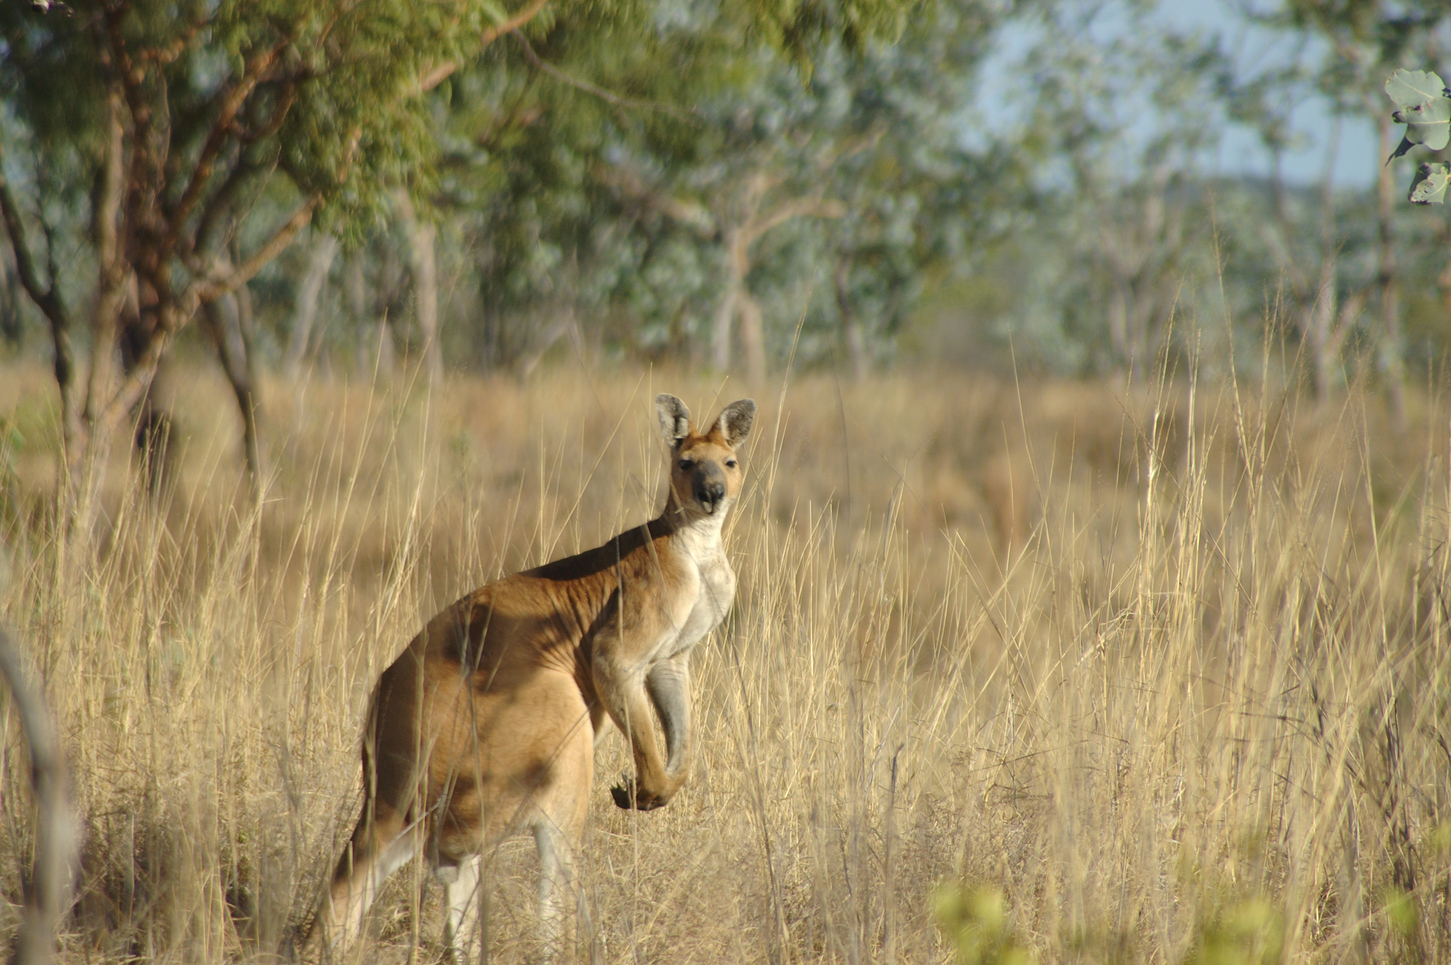 A large male antilopine wallaroo, endemic to tropical Australia. – Image Credit: Euan Ritchie